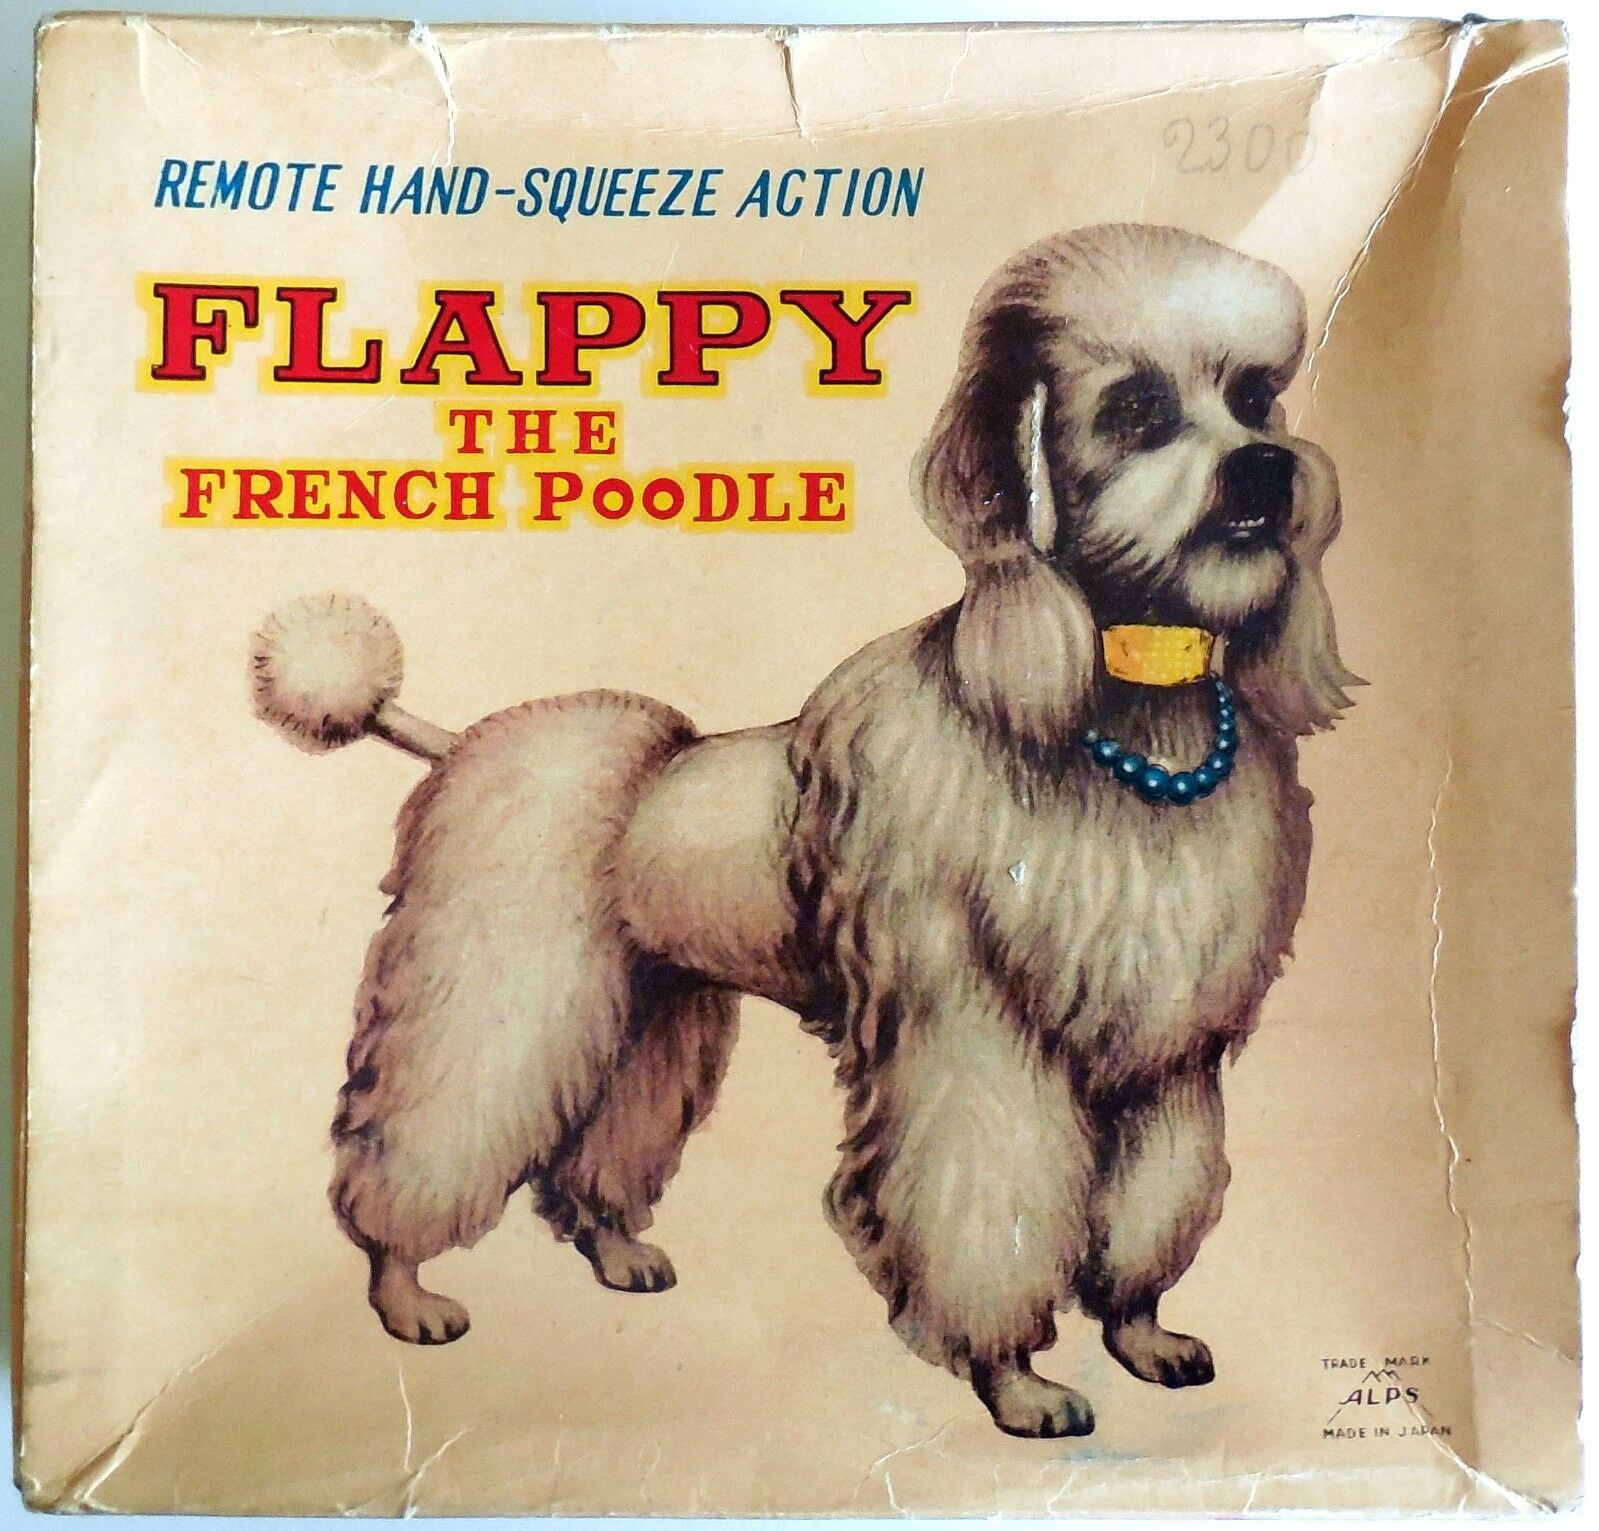 VINTAGE TOY REMOTE HAND SQUEEZE ACTION FLAPPY THE FRENCH POODLE ALPS JAPAN 50s